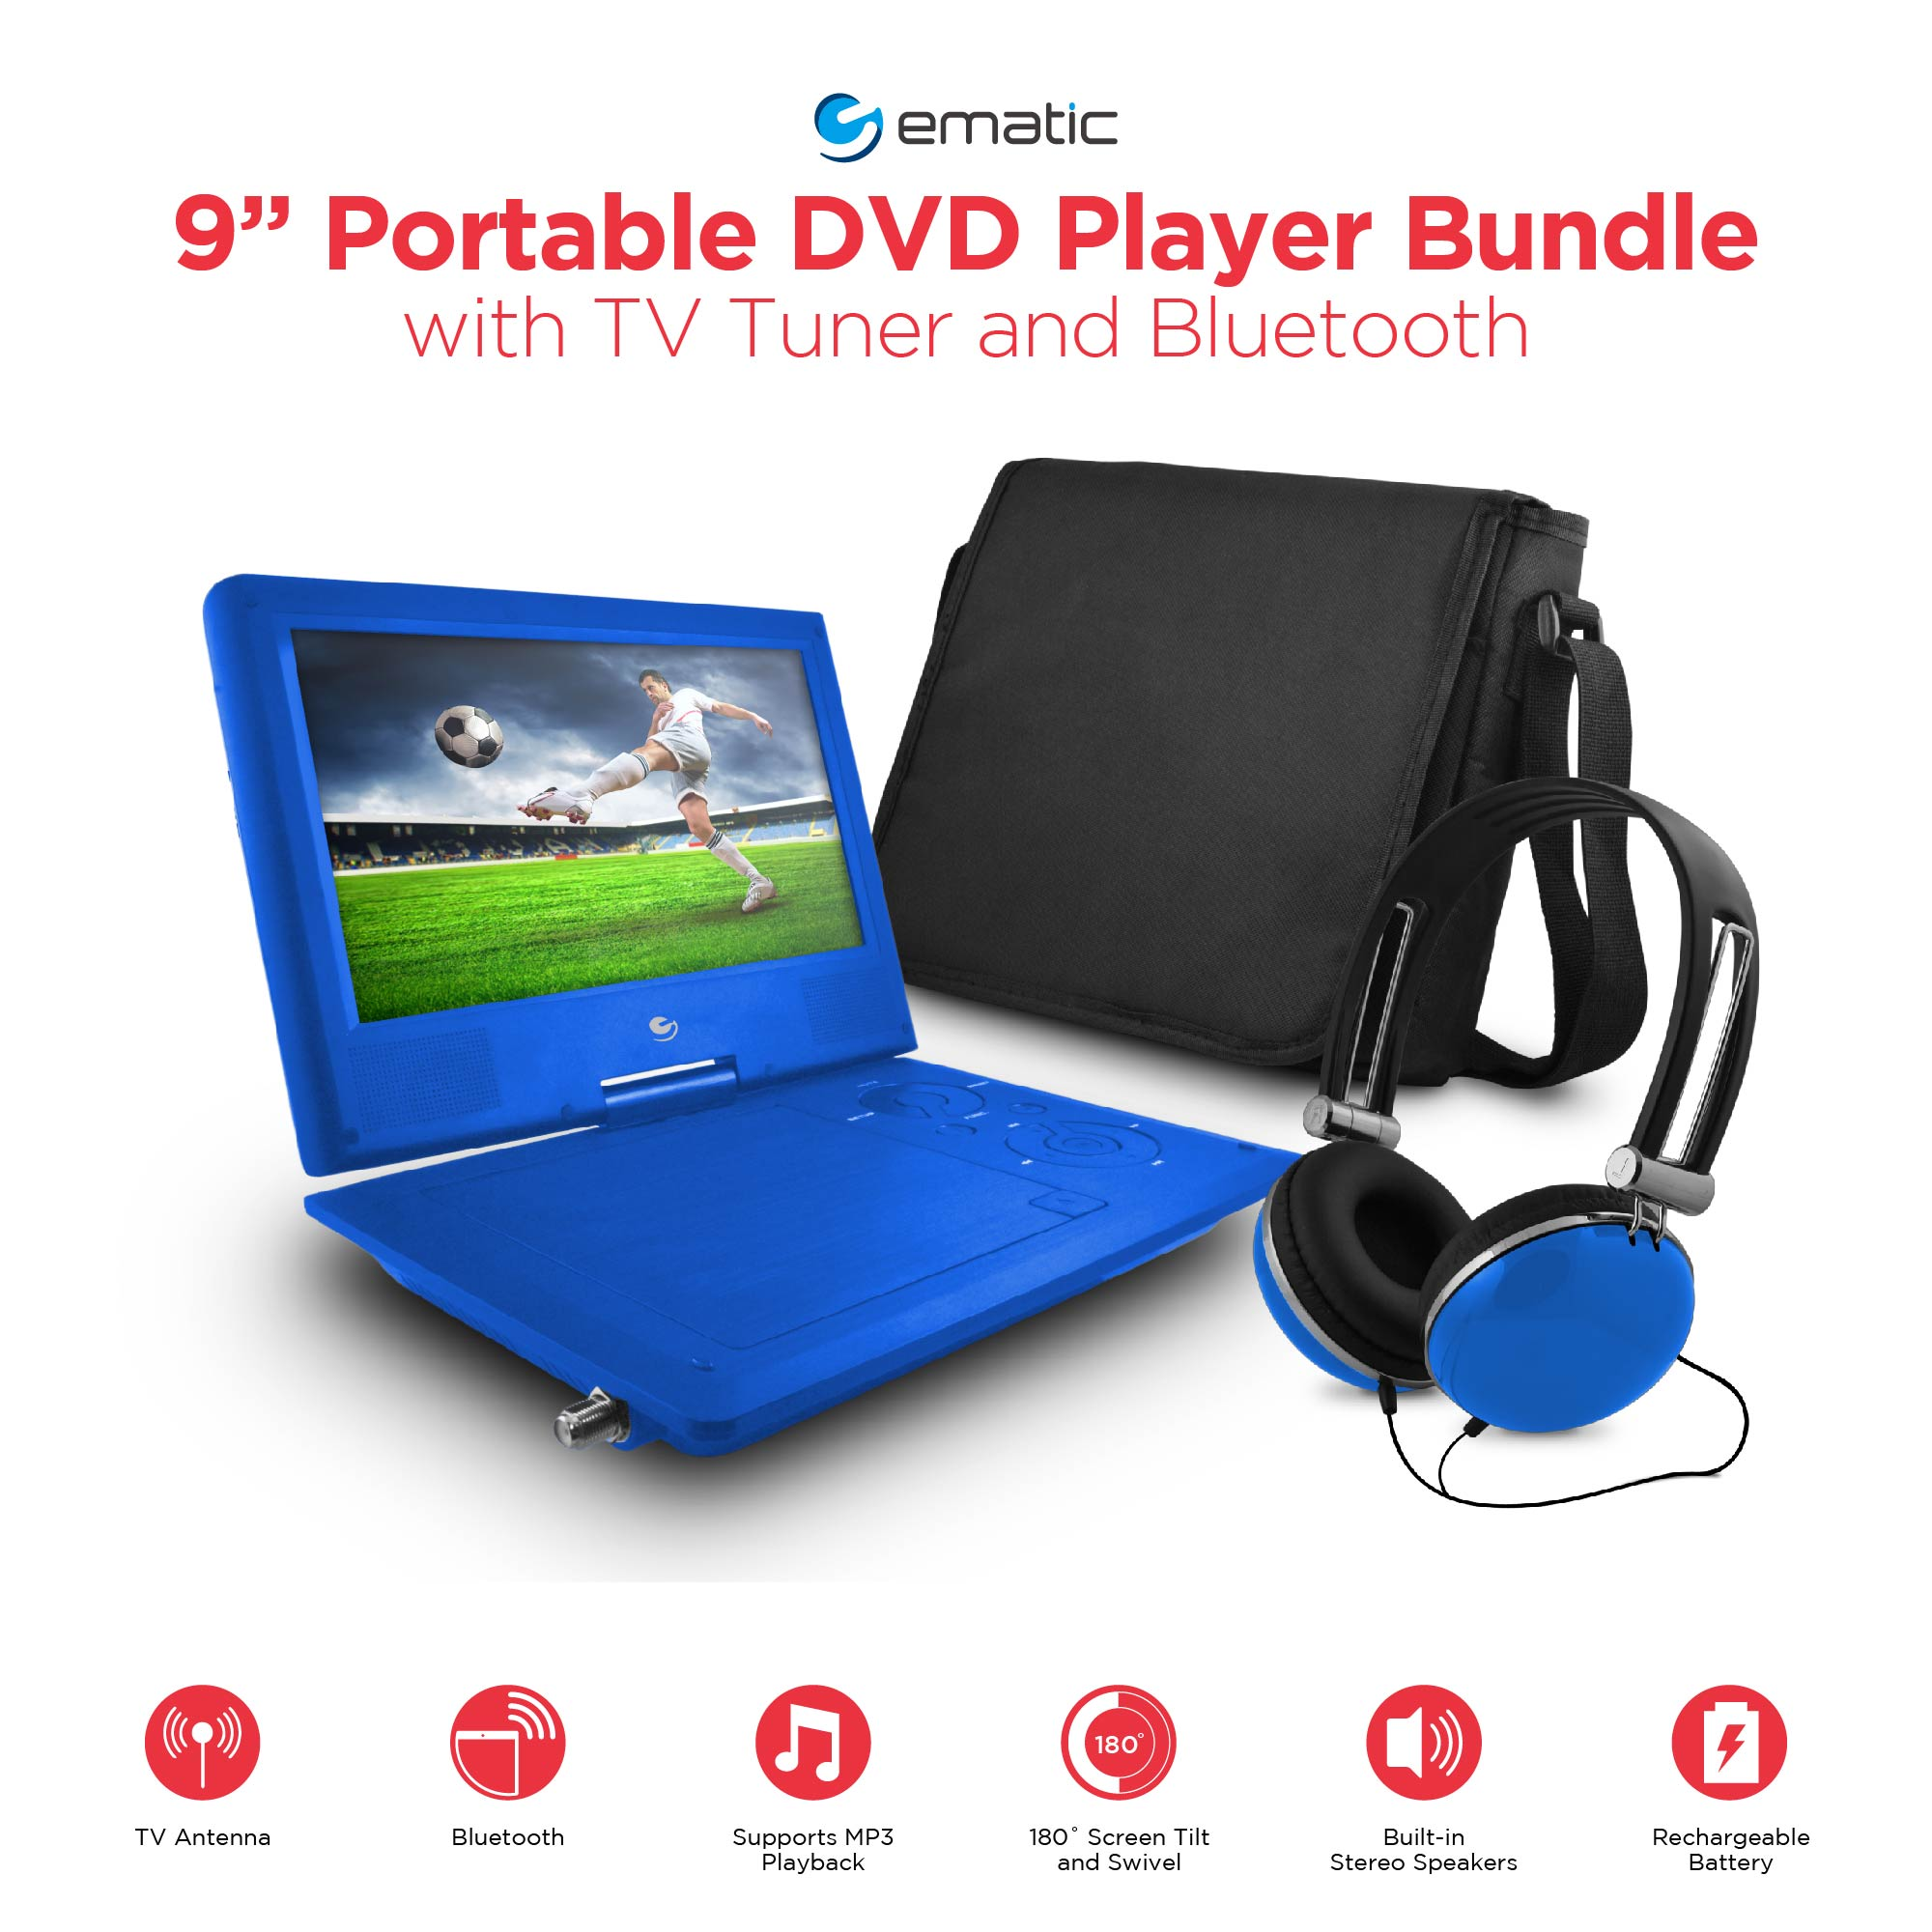 "Ematic 9"" Portable DVD Player with TV Tuner and Bluetooth"